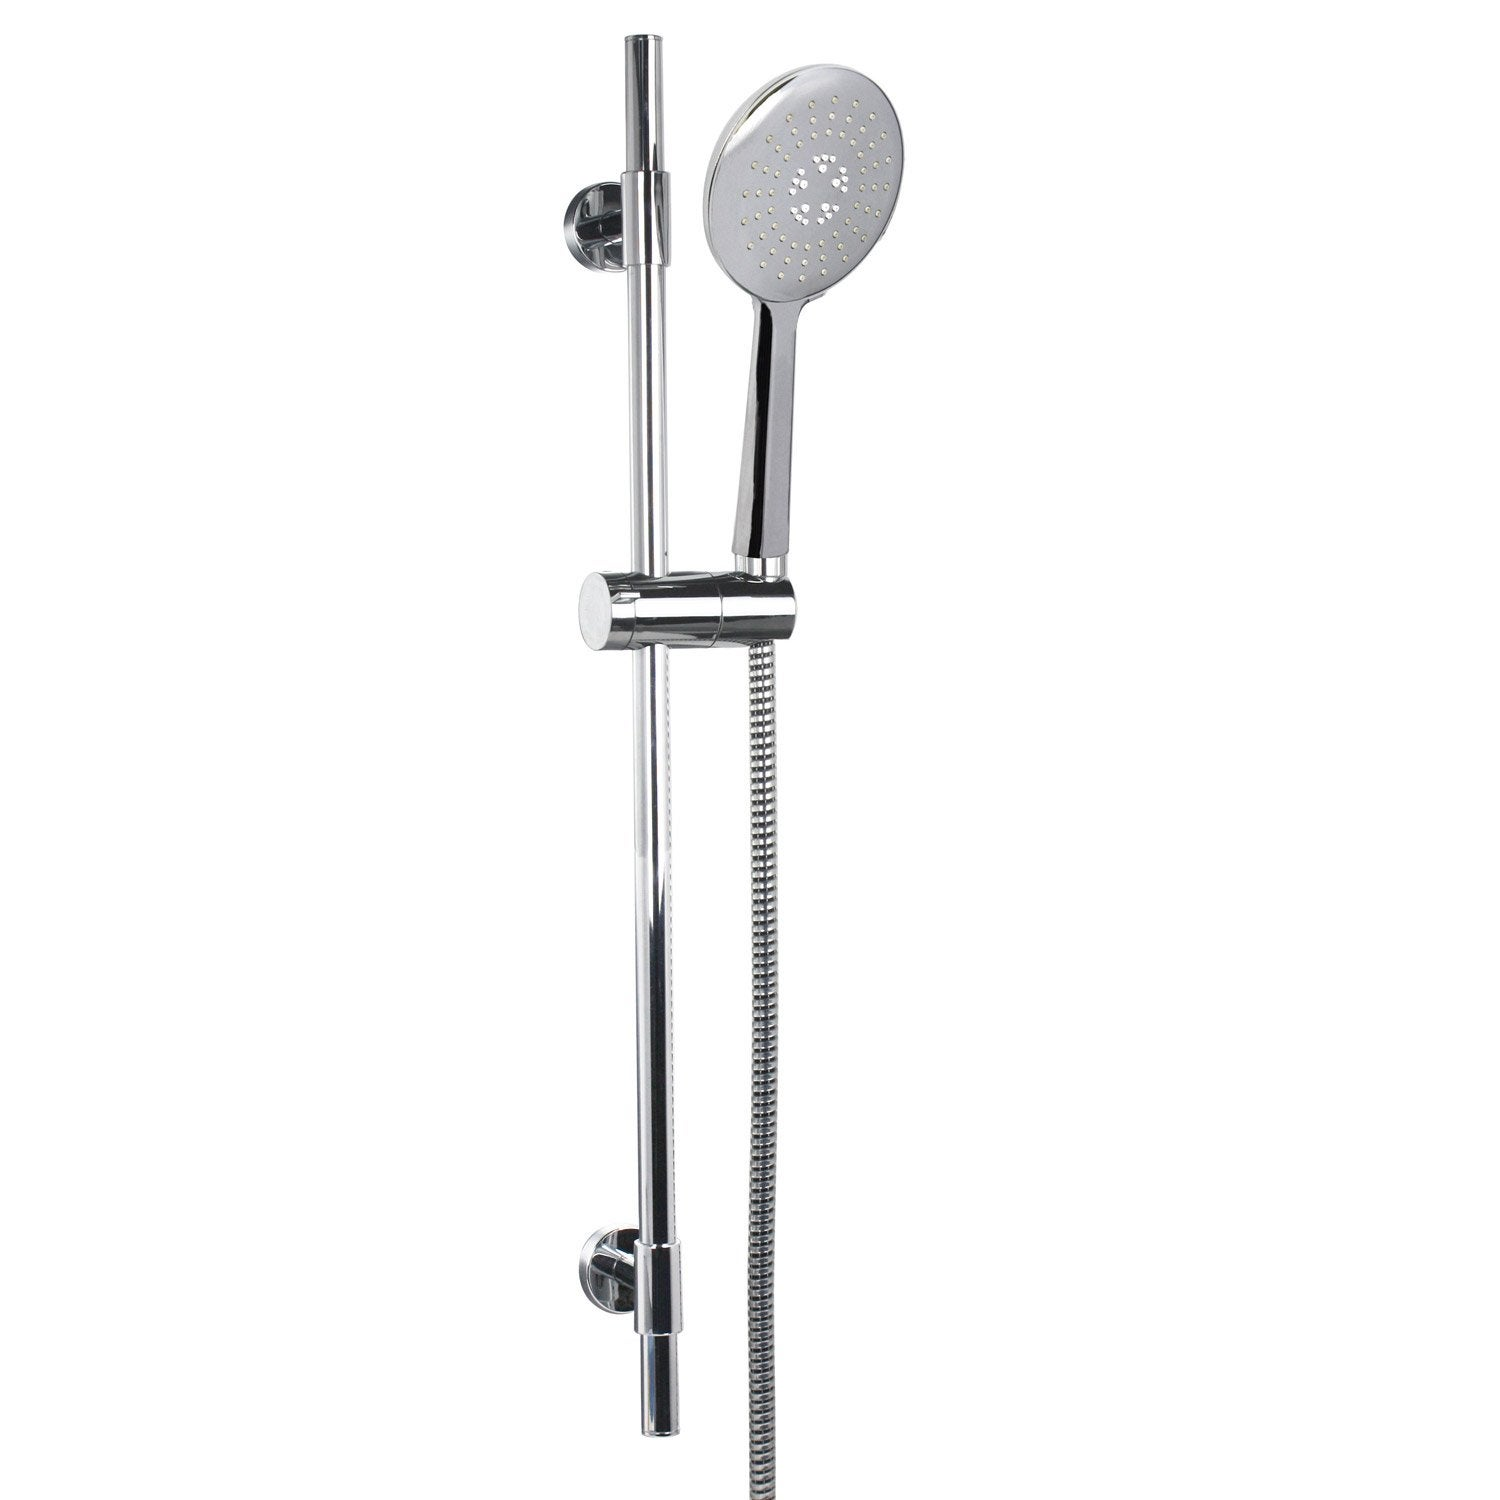 Ensemble silva 3 jets chrome sensea leroy merlin for Ensemble de douche leroy merlin